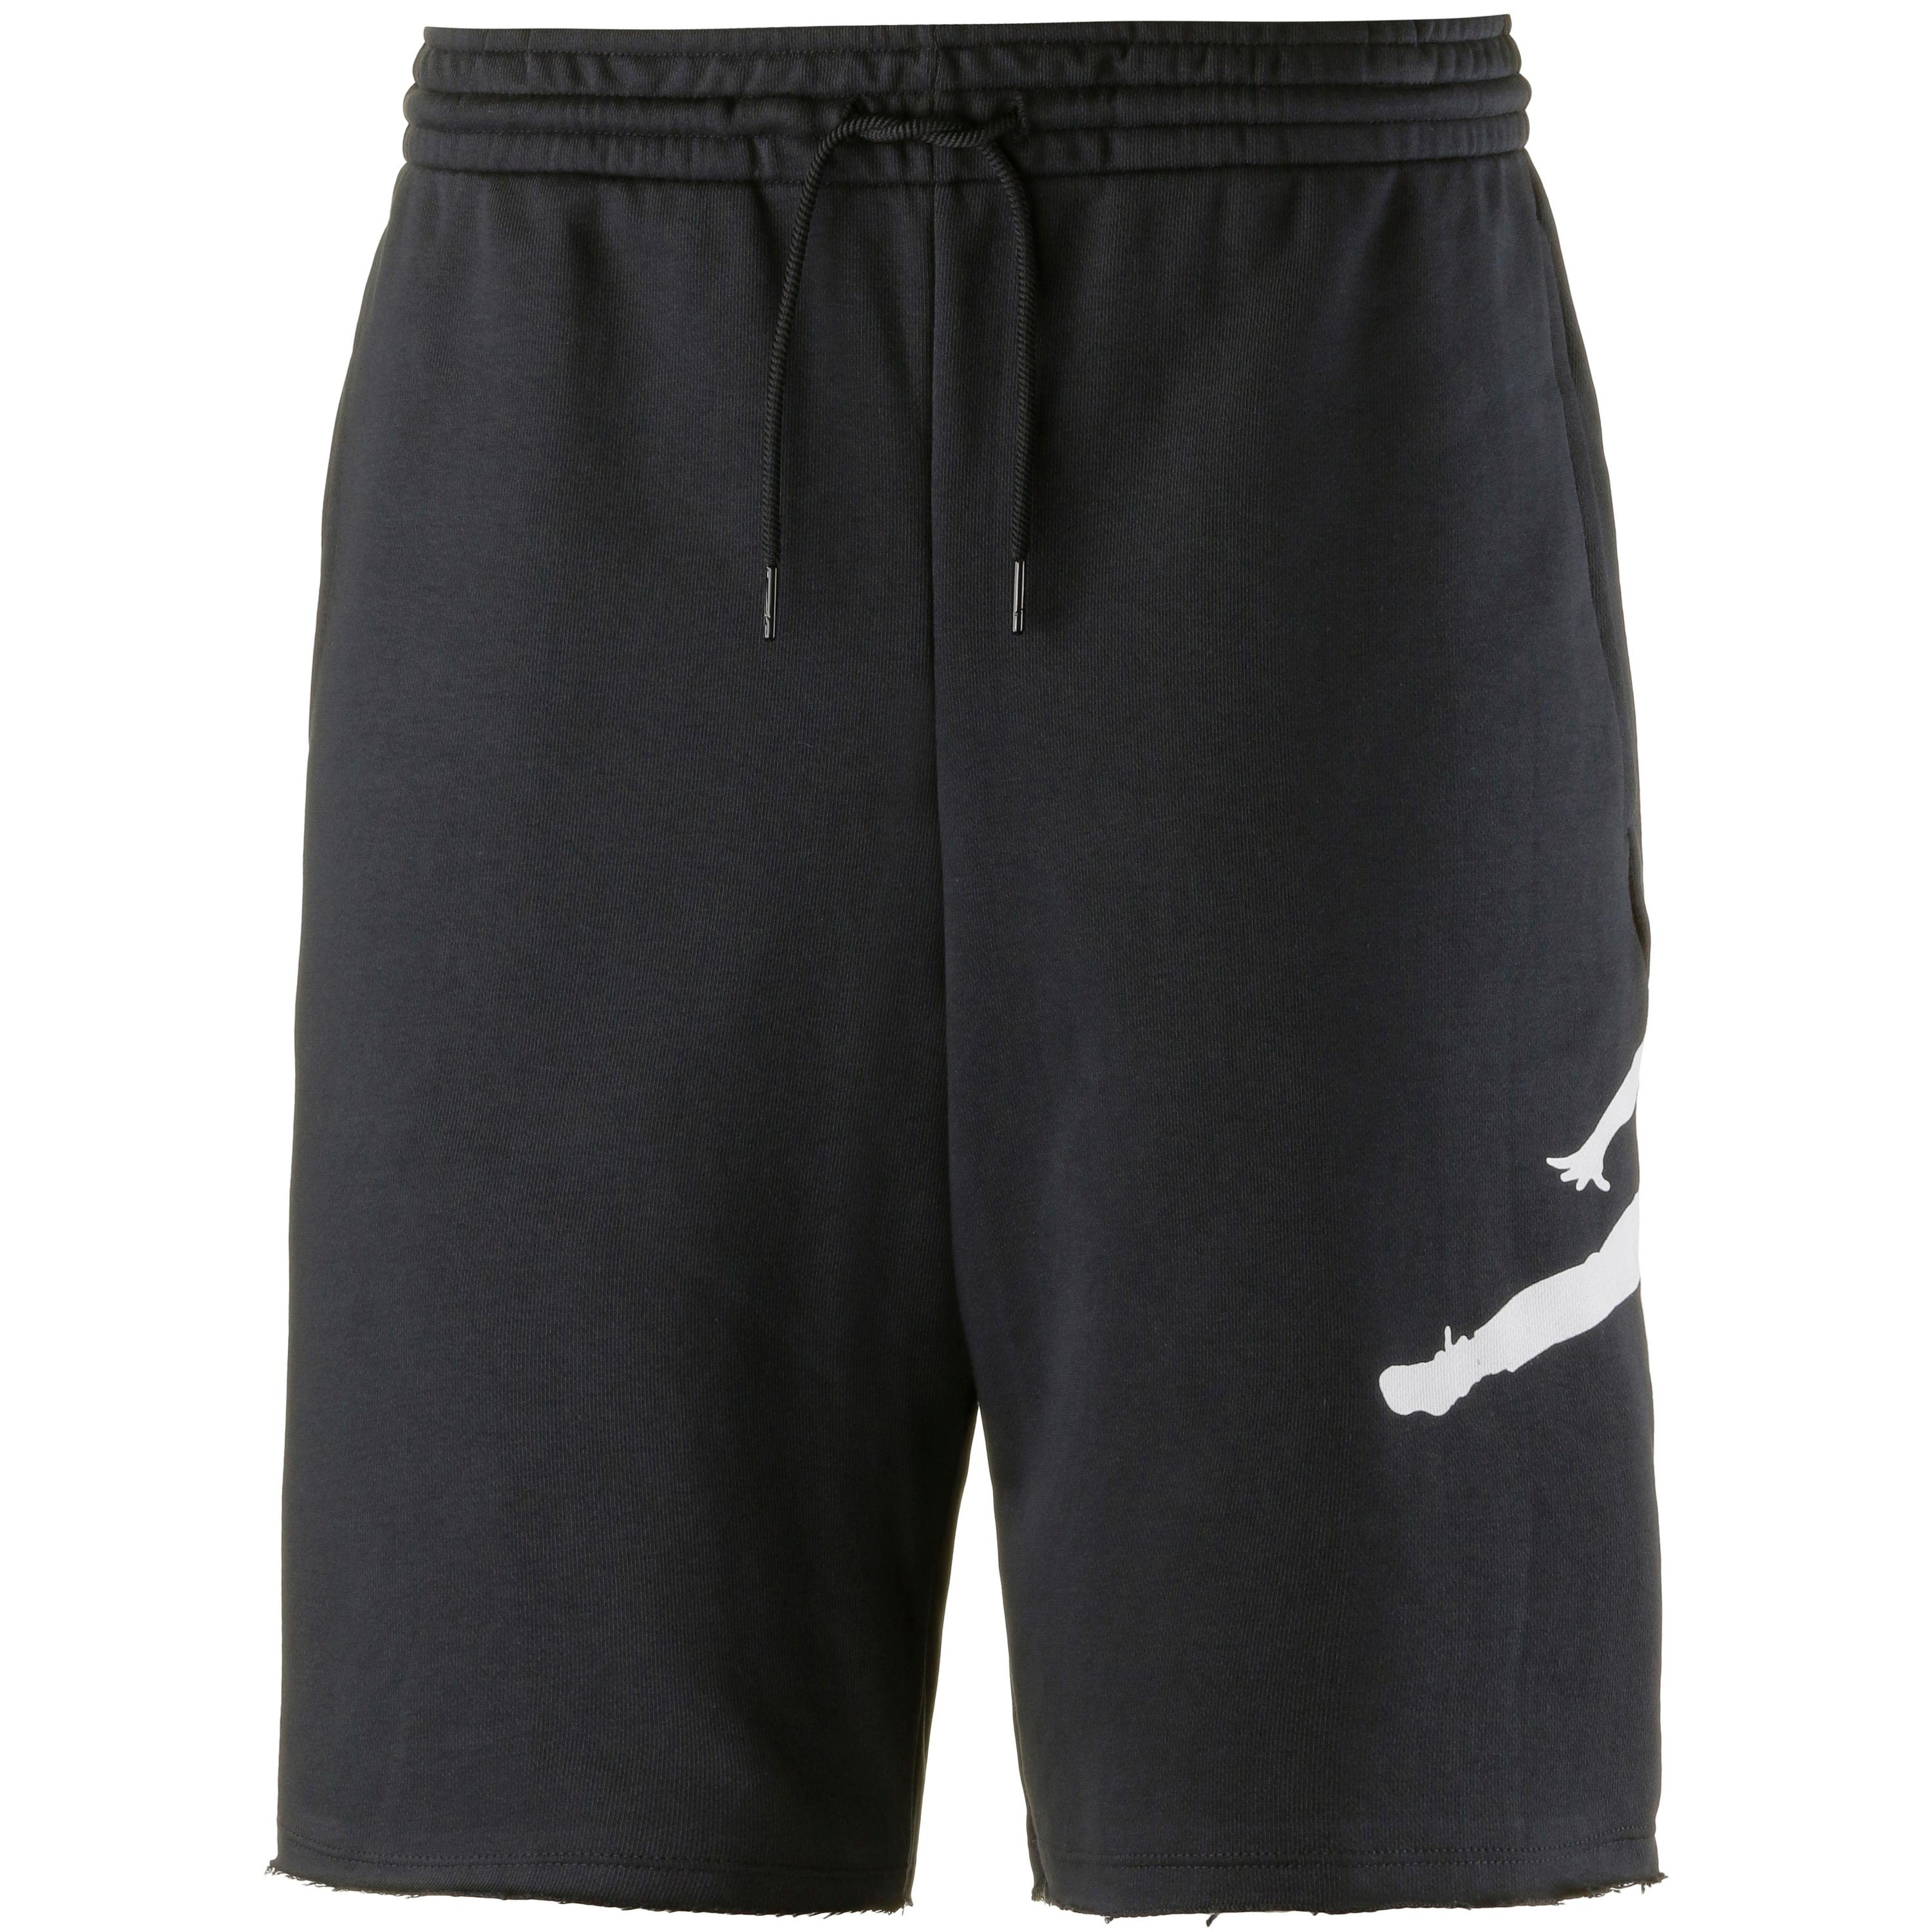 Image of Nike JUMPMAN AIR FLEECE SHORT Basketball-Shorts Herren